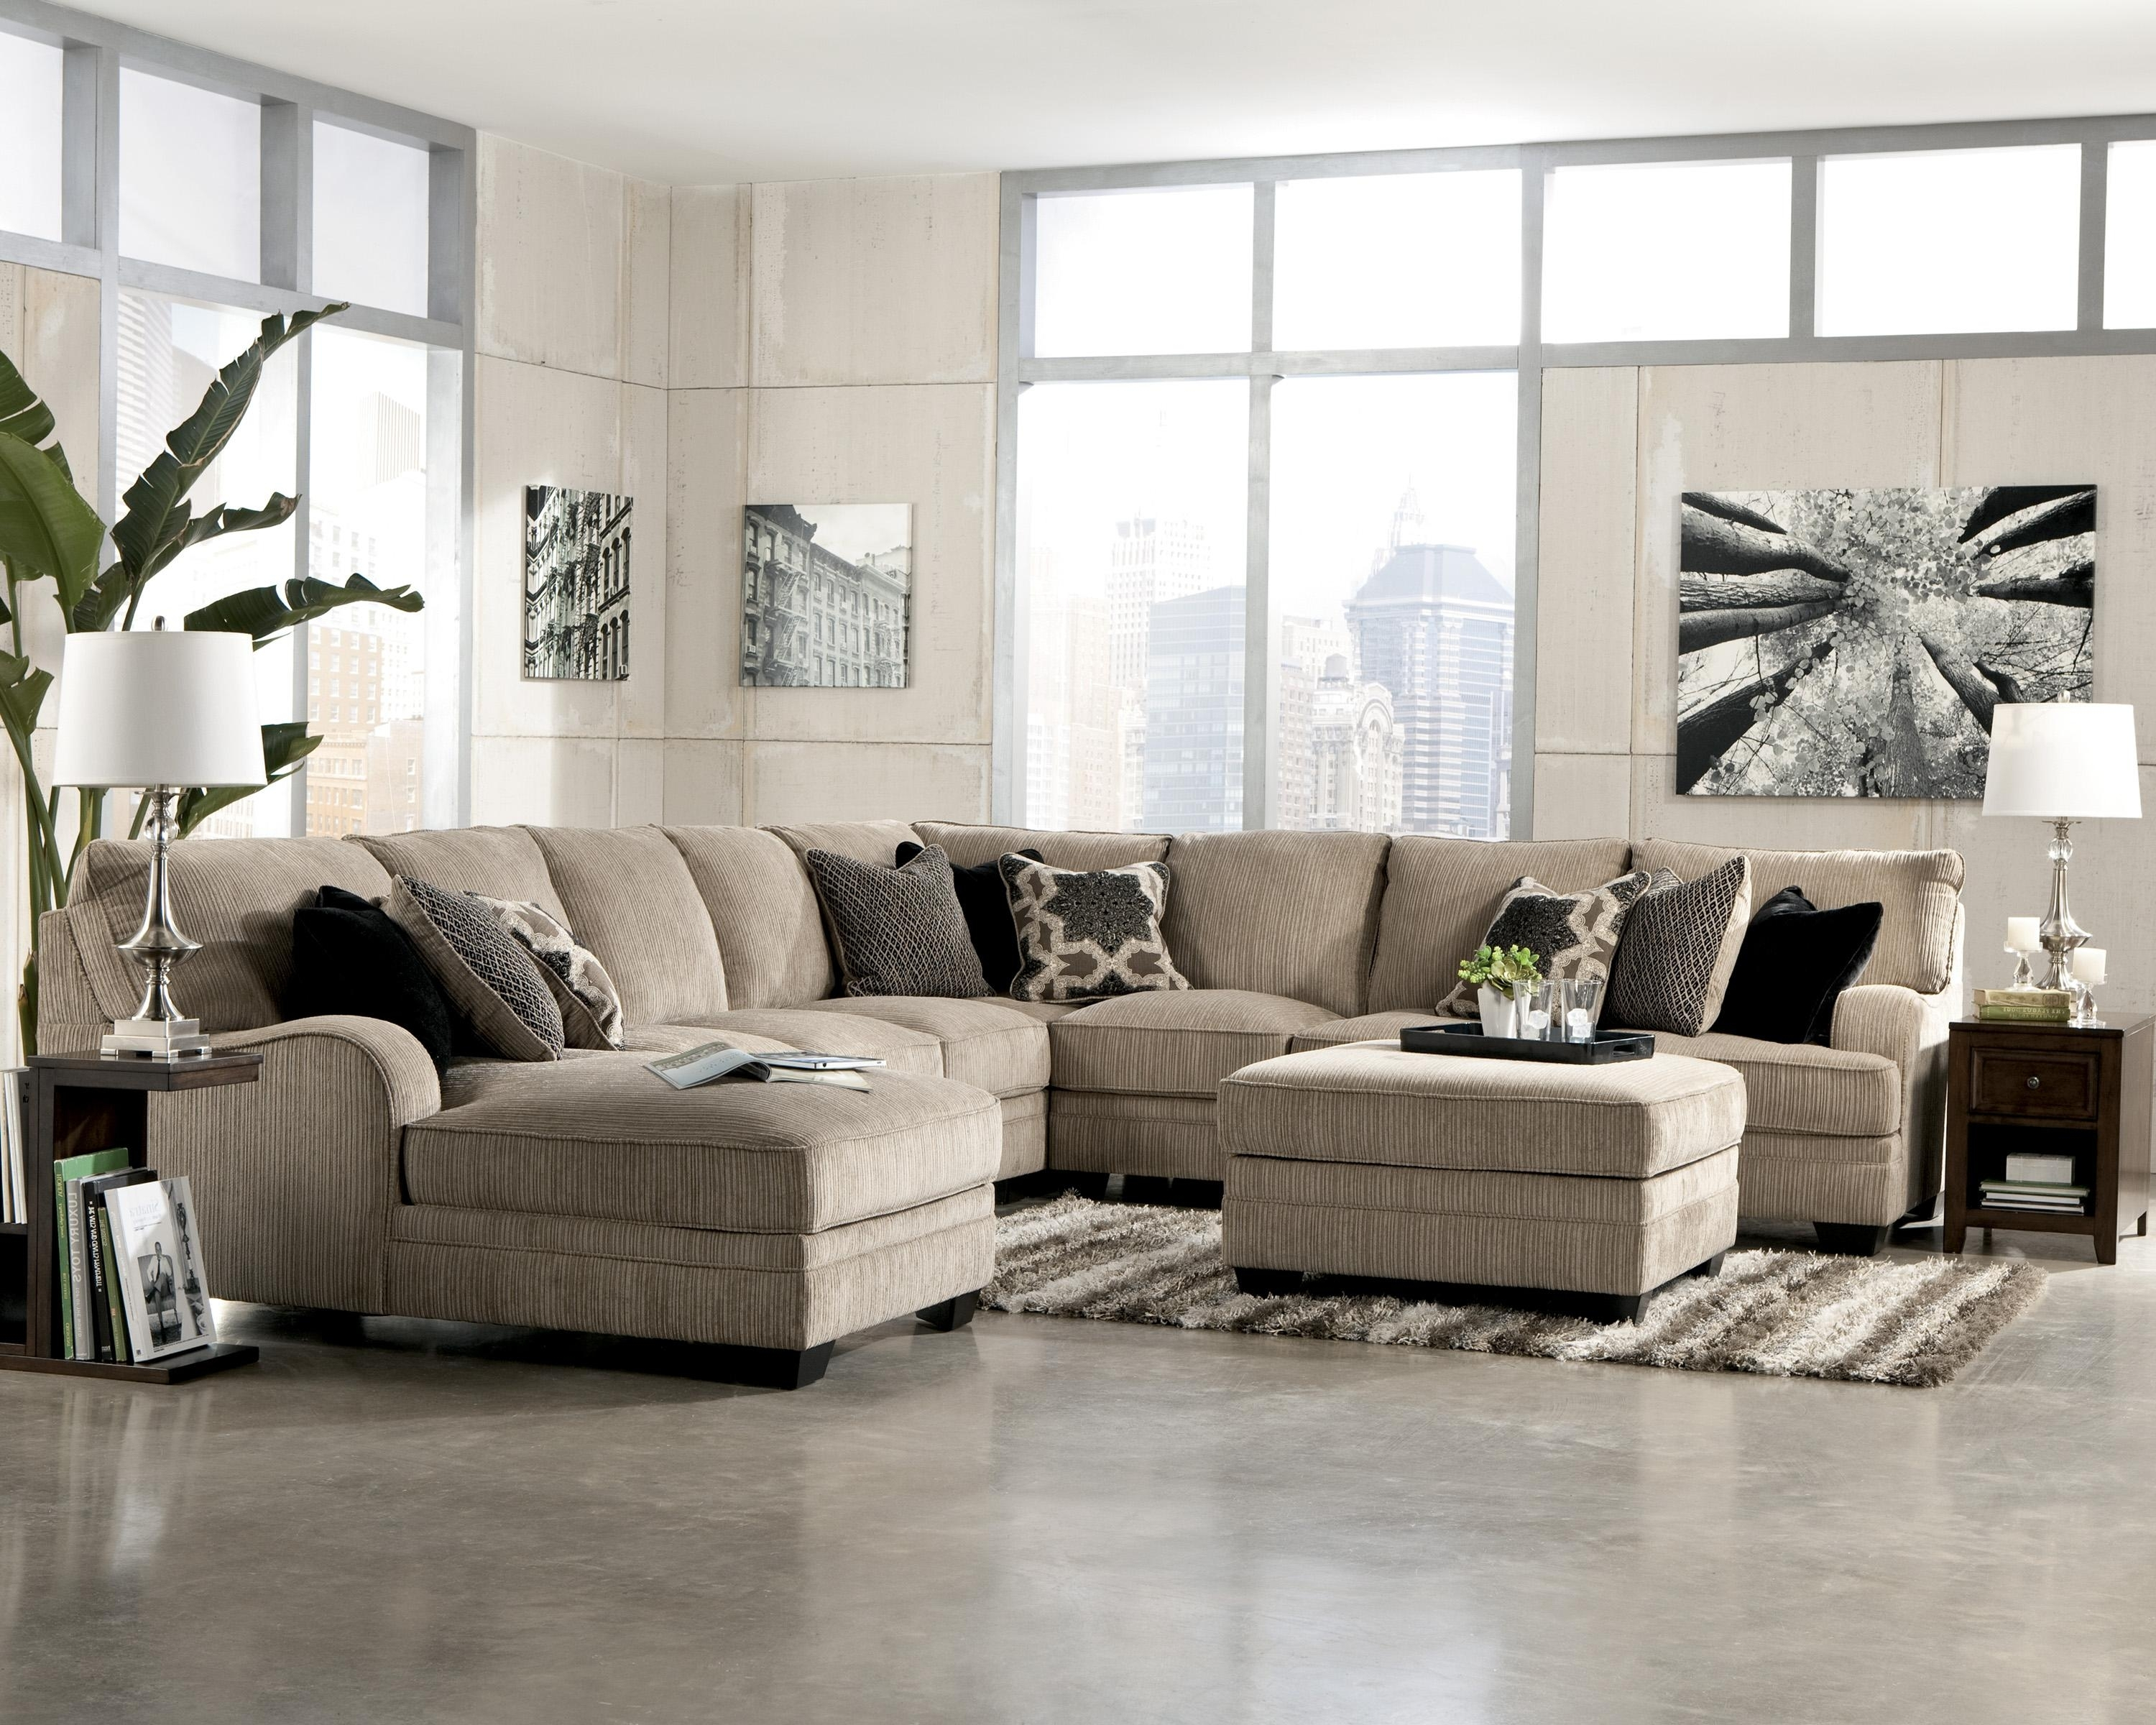 Katisha   Platinum 5 Piece Sectional Sofa With Left Chaise Inside Jackson Ms Sectional Sofas (Photo 5 of 10)